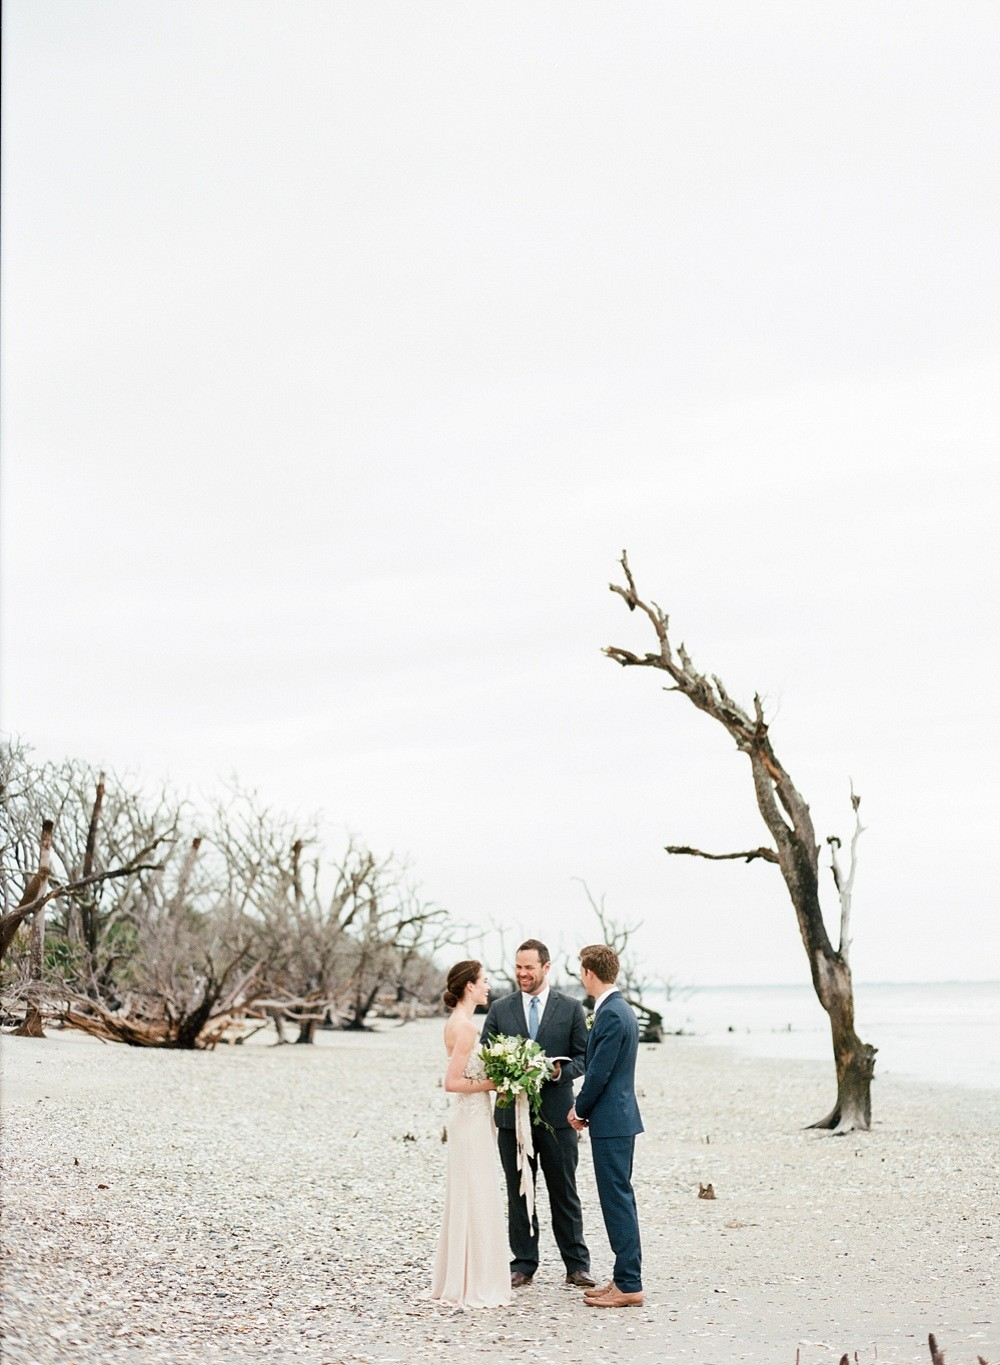 Alexandra and Michael's Meaningful Charleston Elopement